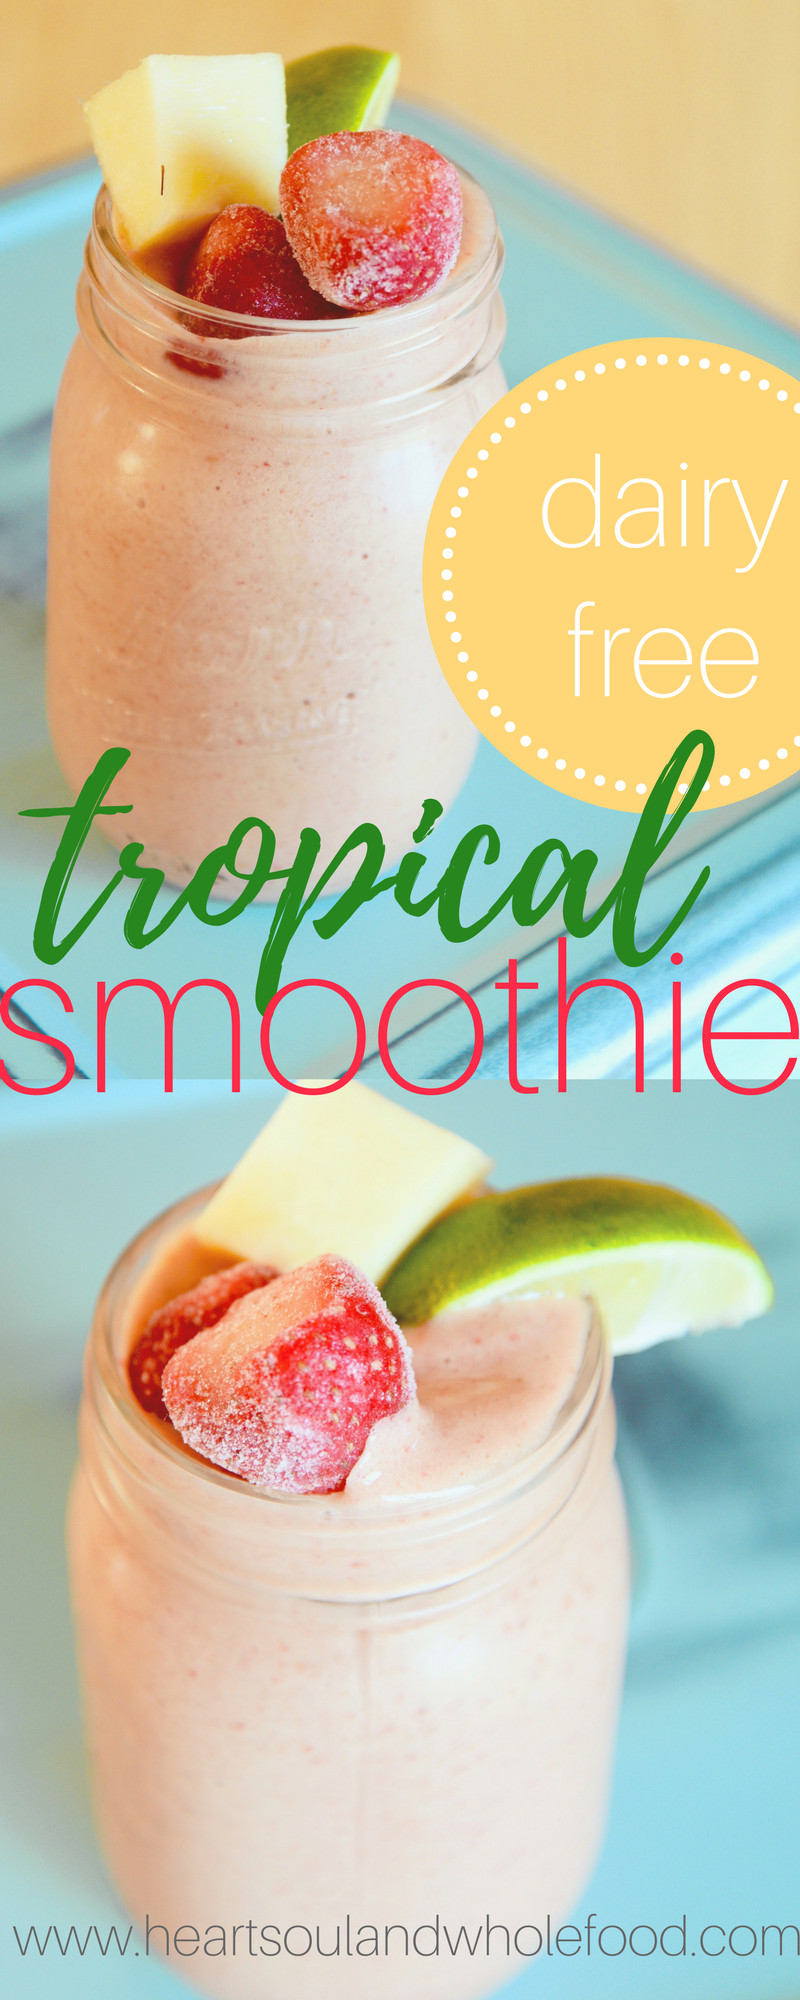 Dairy Free Smoothies  Dairy Free Tropical Smoothie Recipe Heart Soul and Whole